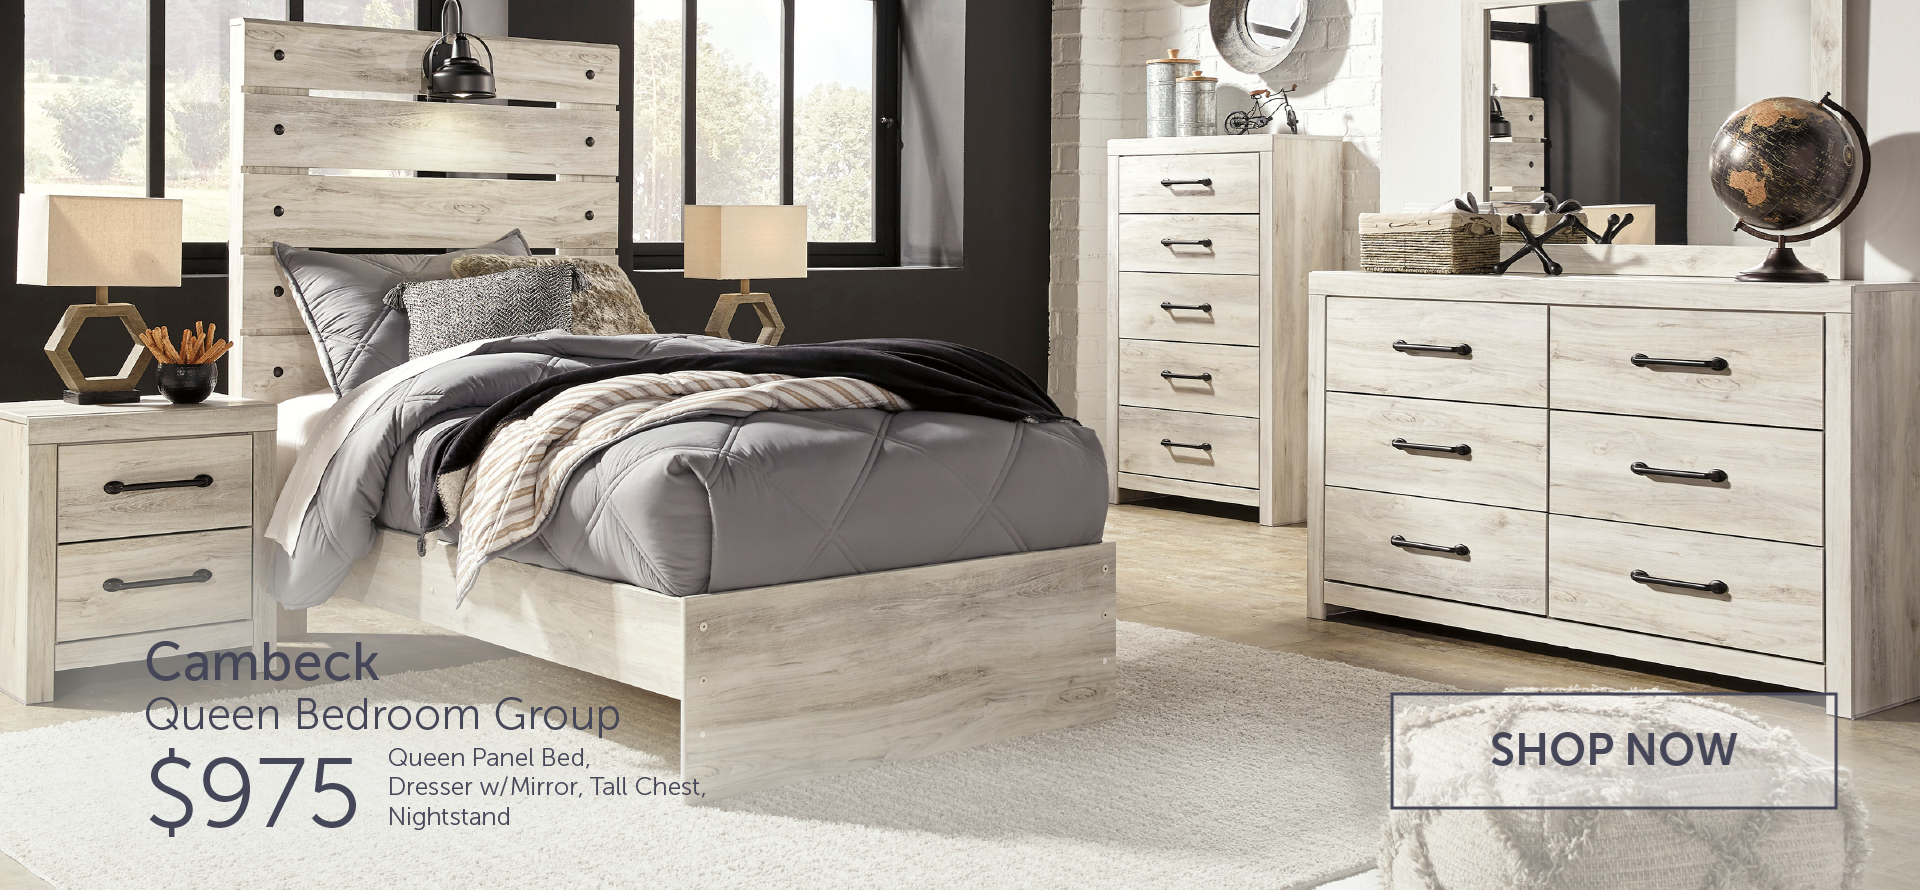 b192 queen panel bed, dresser/ mirror, tall chest and nightstand